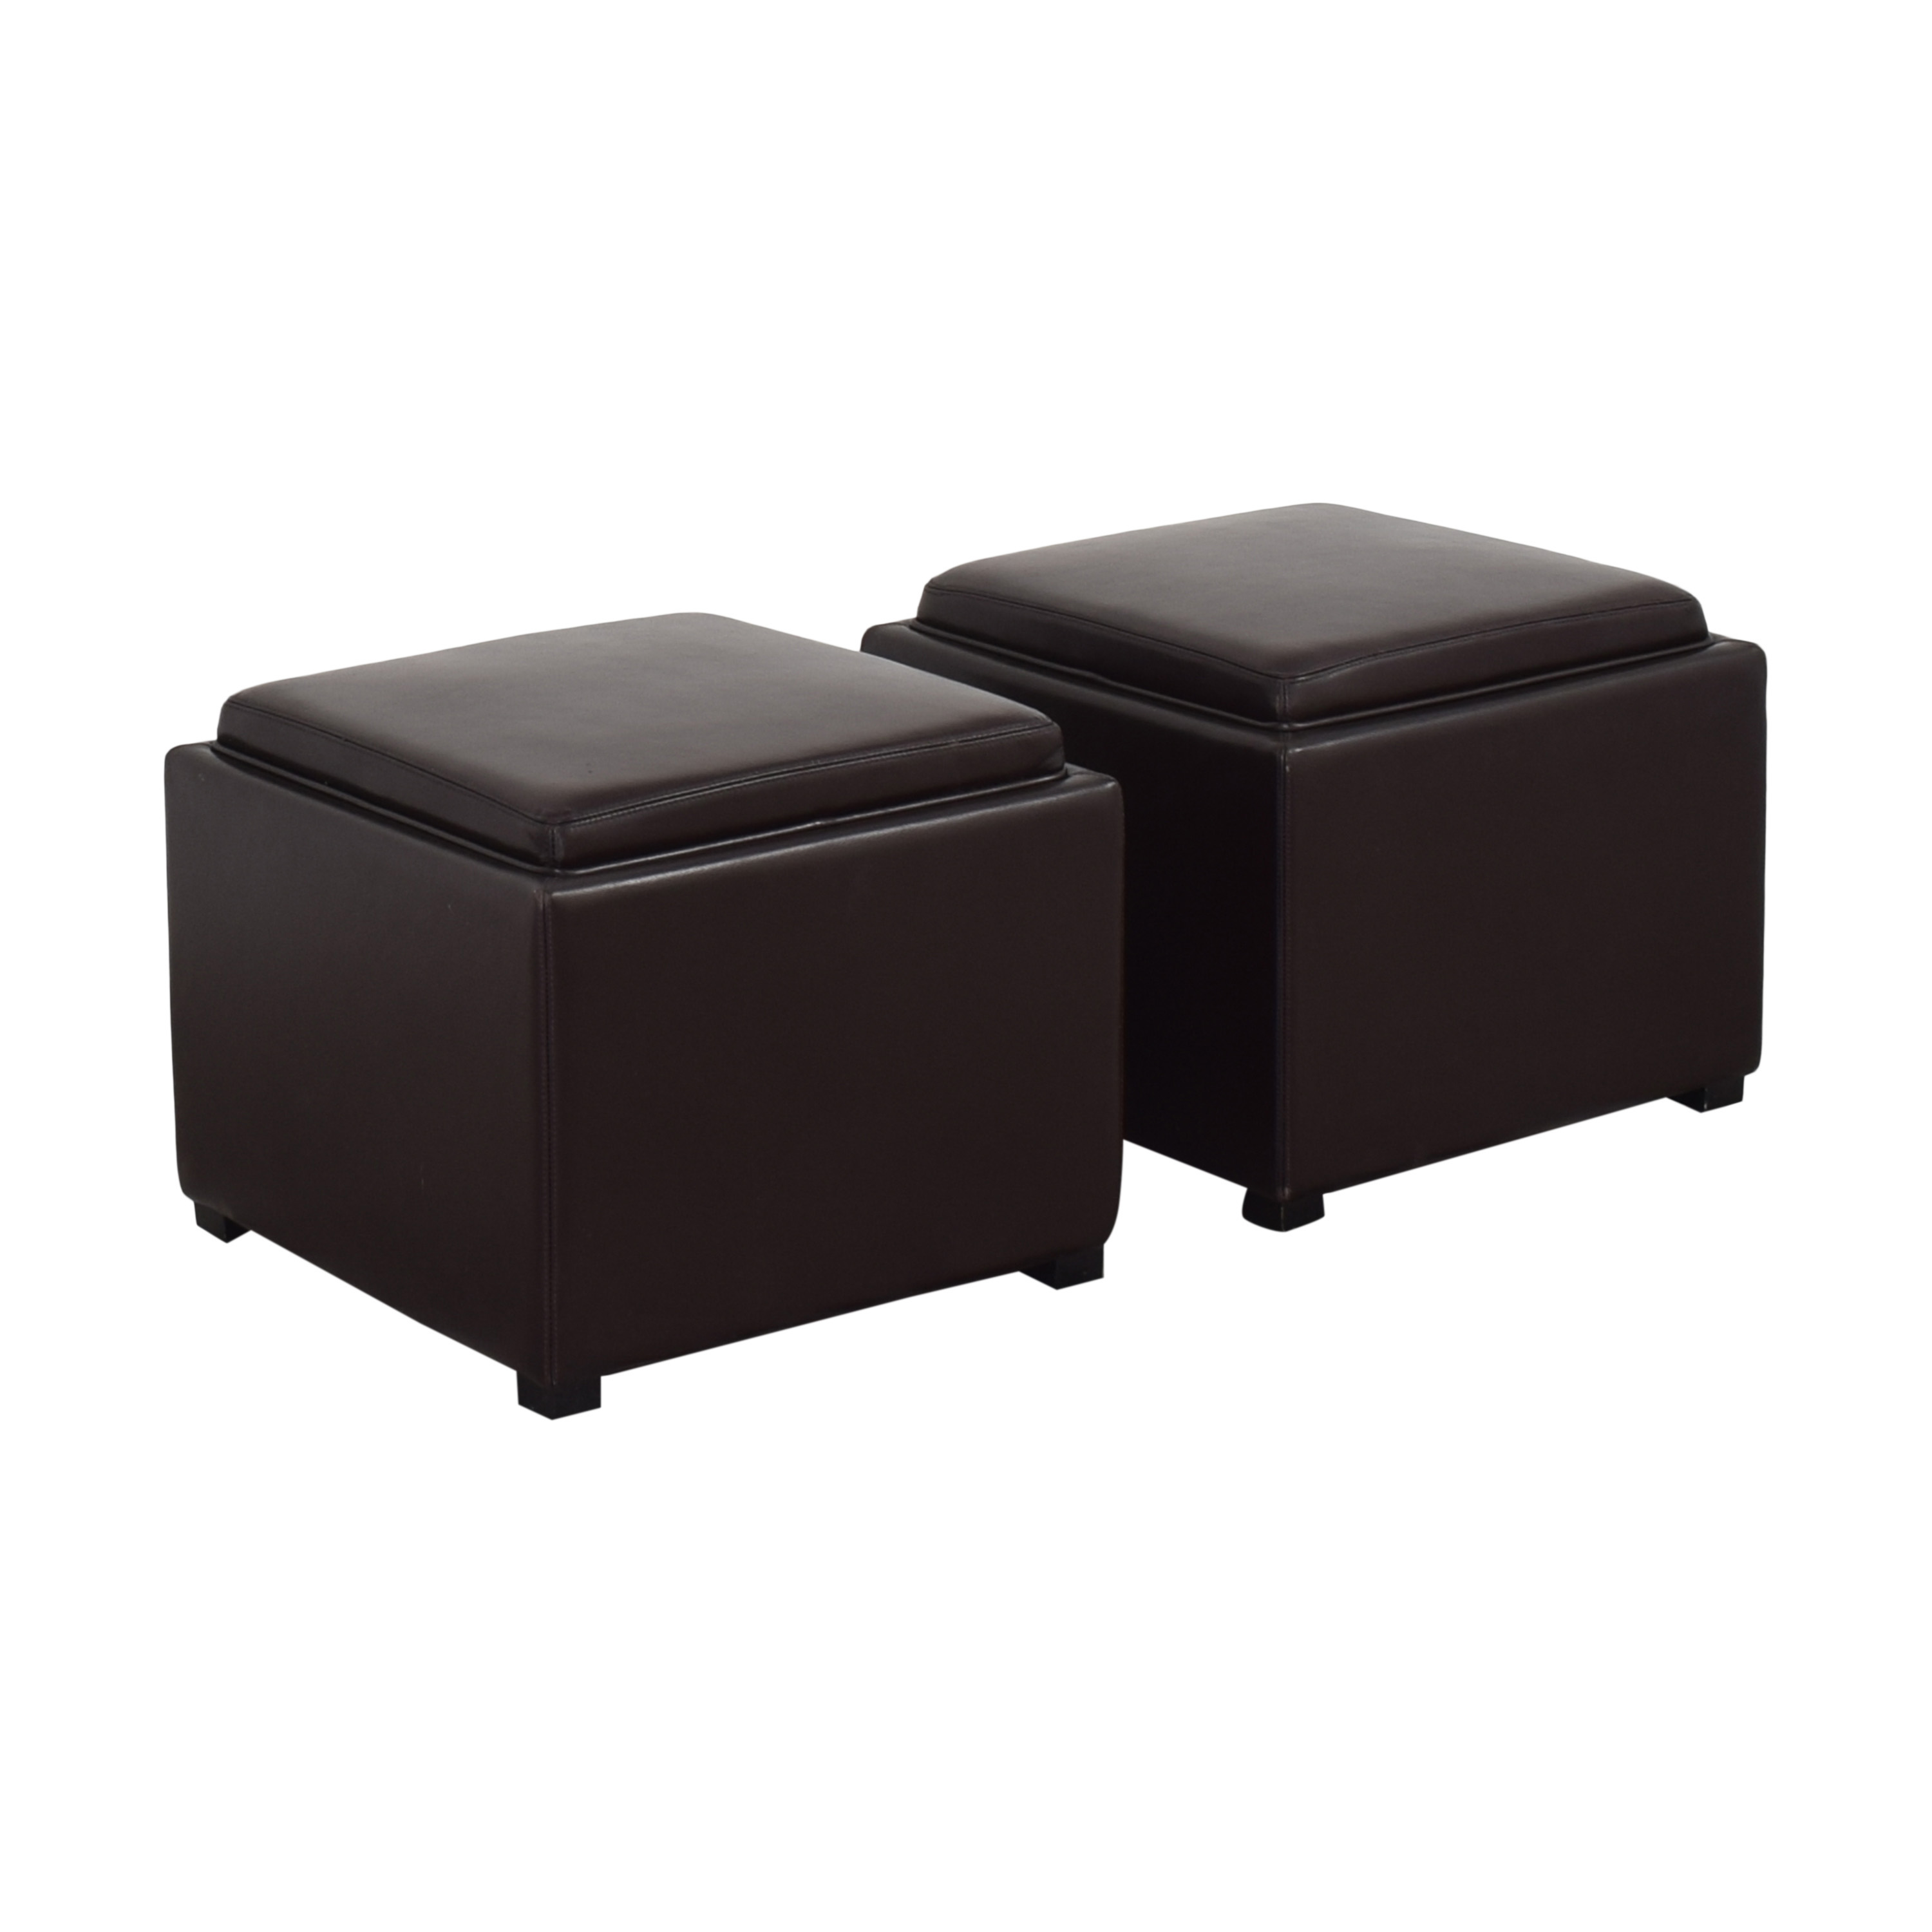 Crate & Barrel Crate & Barrel Stow Ottomans with Storage price